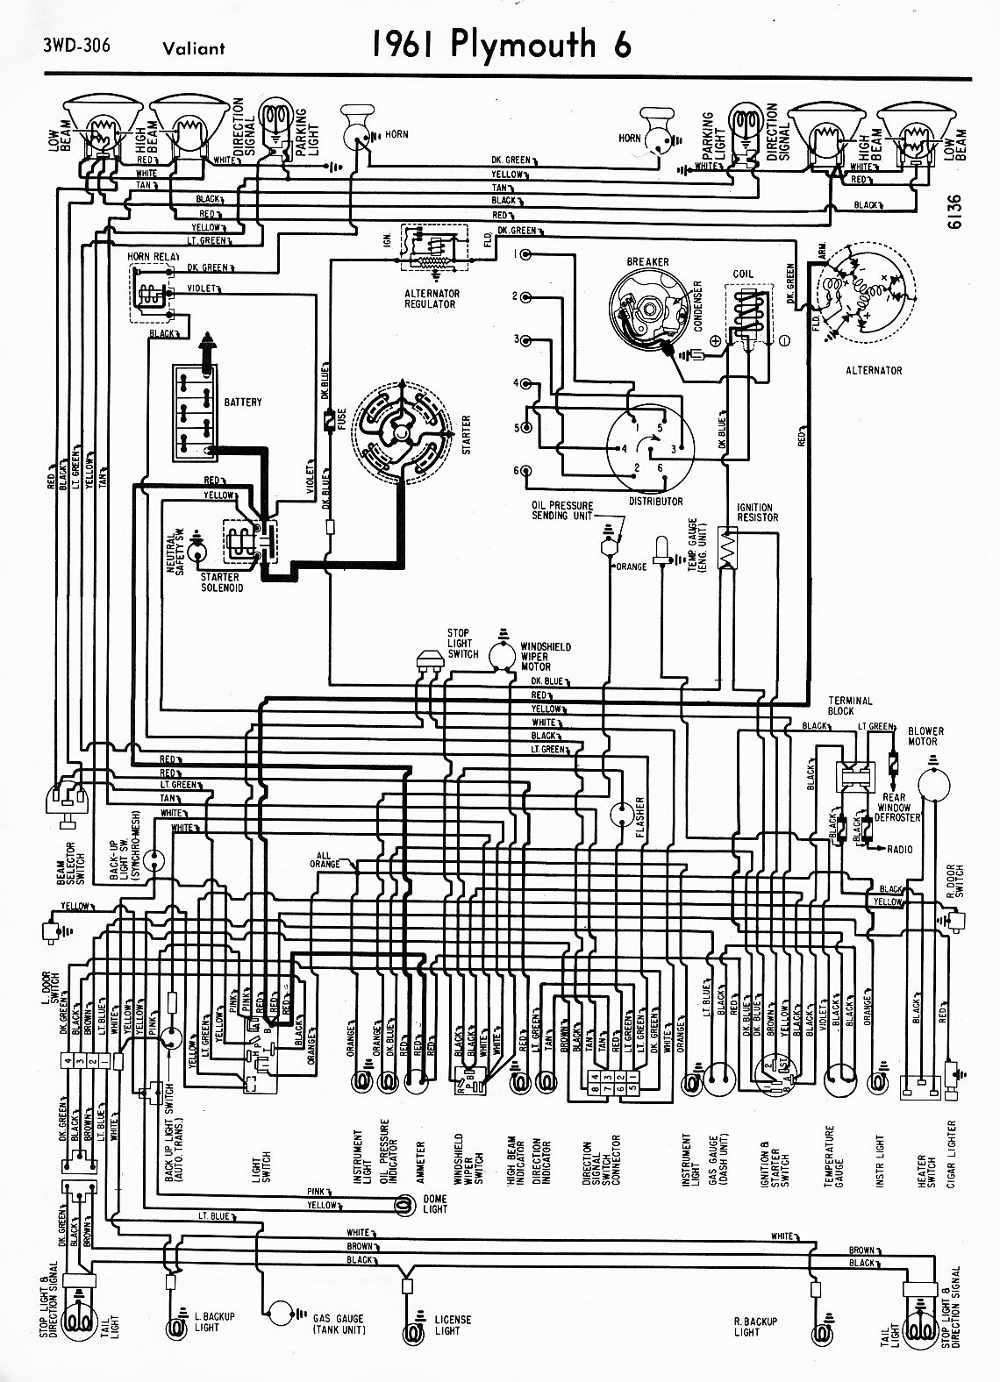 Wiring Diagrams Of Plymouth And V Valiant Part together with Wiring Diagrams Of Plymouth Valiant further Wiring Diagrams Of Plymouth And V Savoy Belvedere And Fury Part furthermore Hqdefault together with Attachment. on wiring diagrams of plymouth and v valiant part